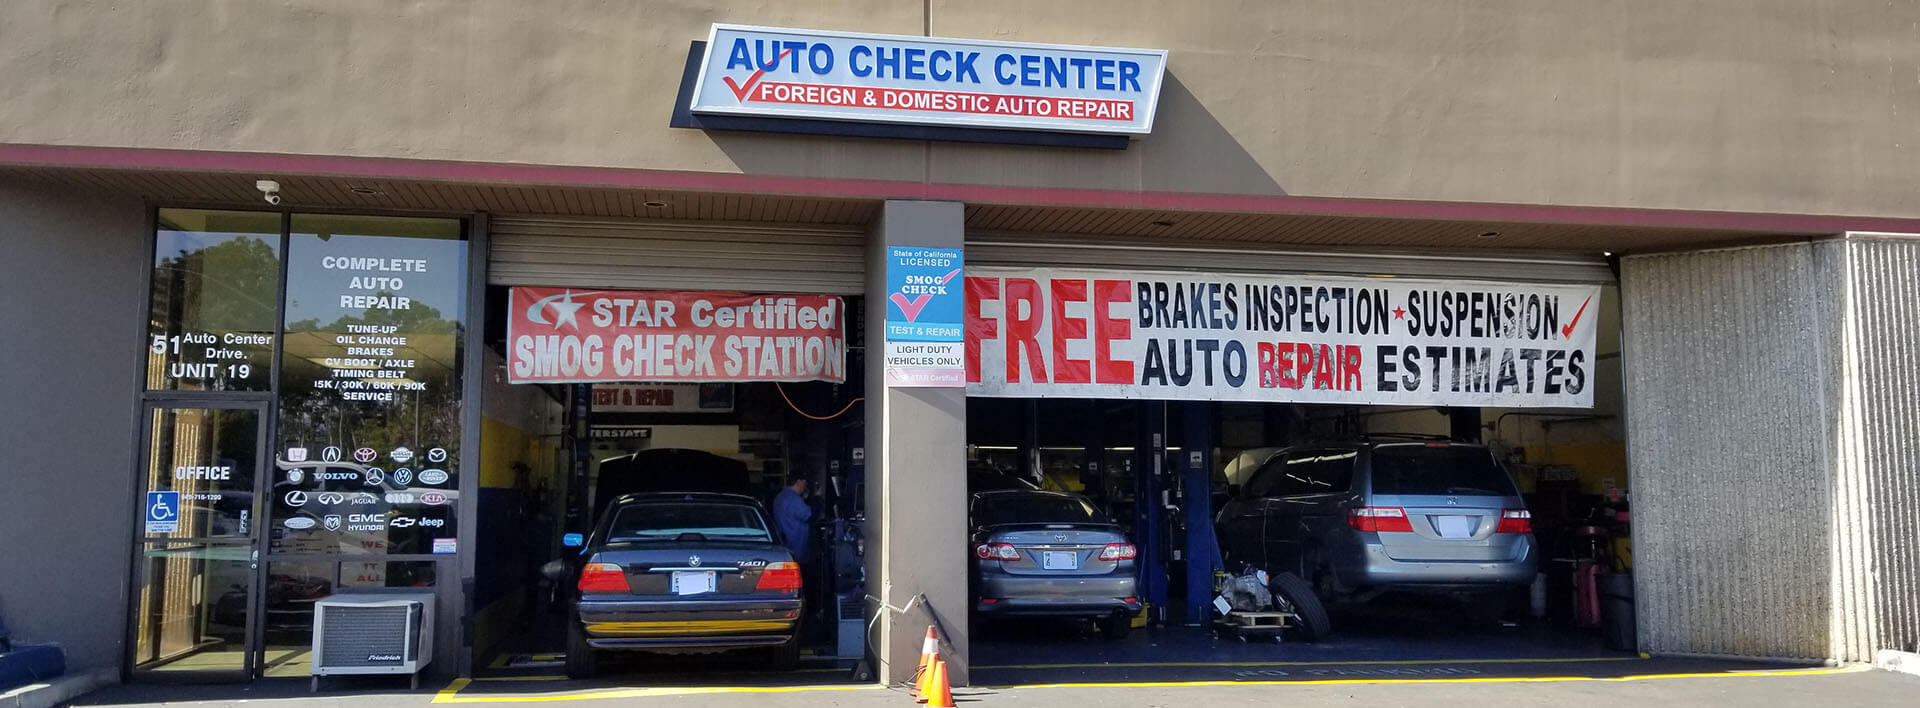 Irvine Auto Center >> Auto Repair Irvine Auto Check Center 51 Auto Center Dr